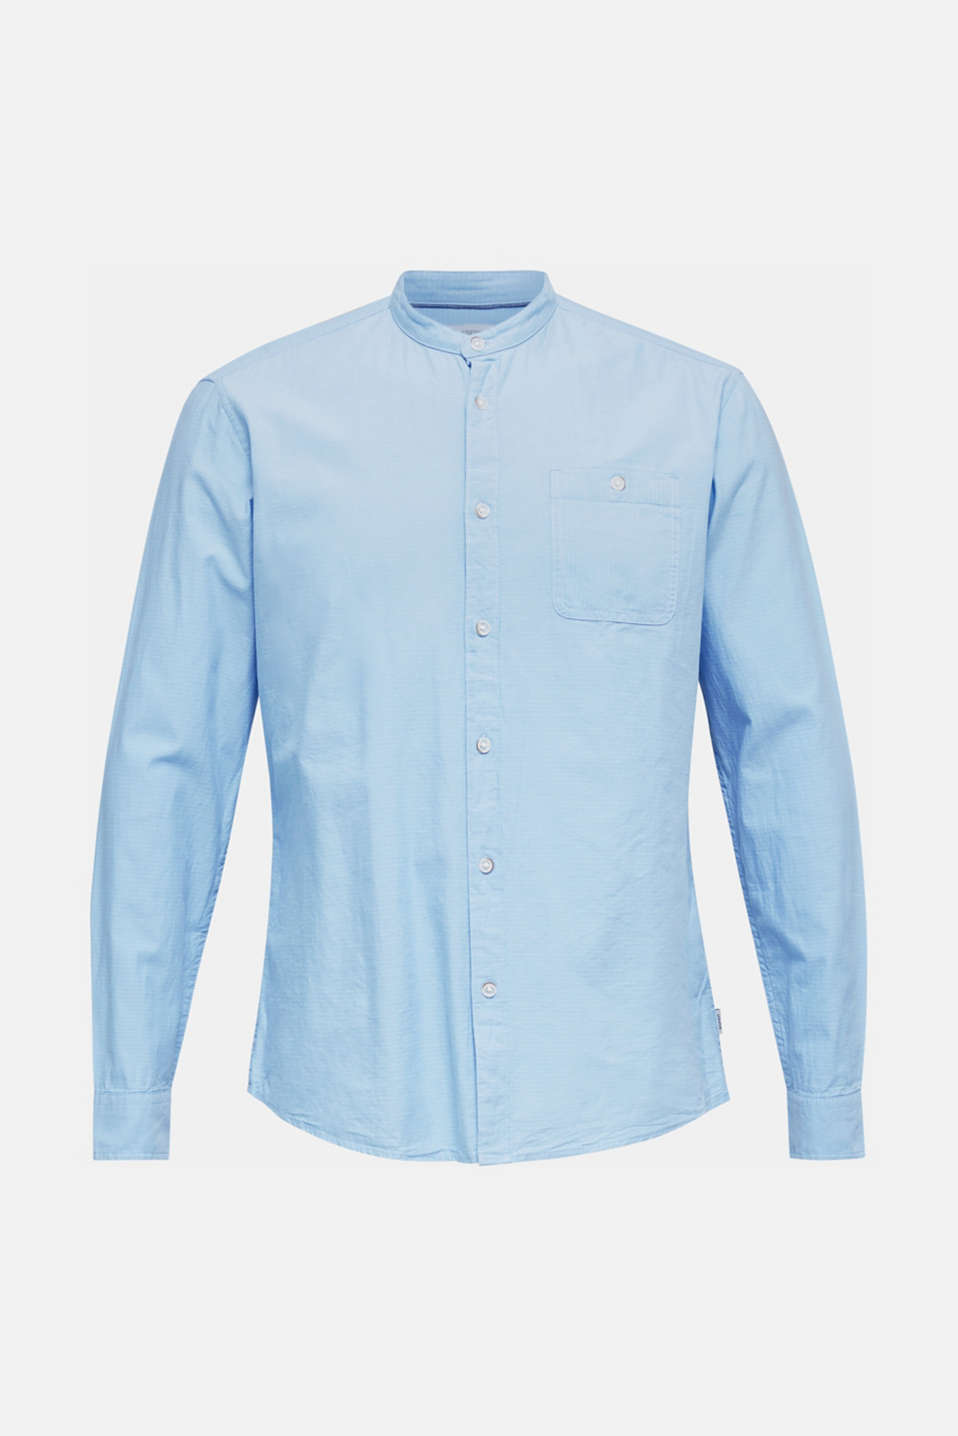 Shirt with band collar, 100% cotton, LIGHT BLUE, detail image number 7